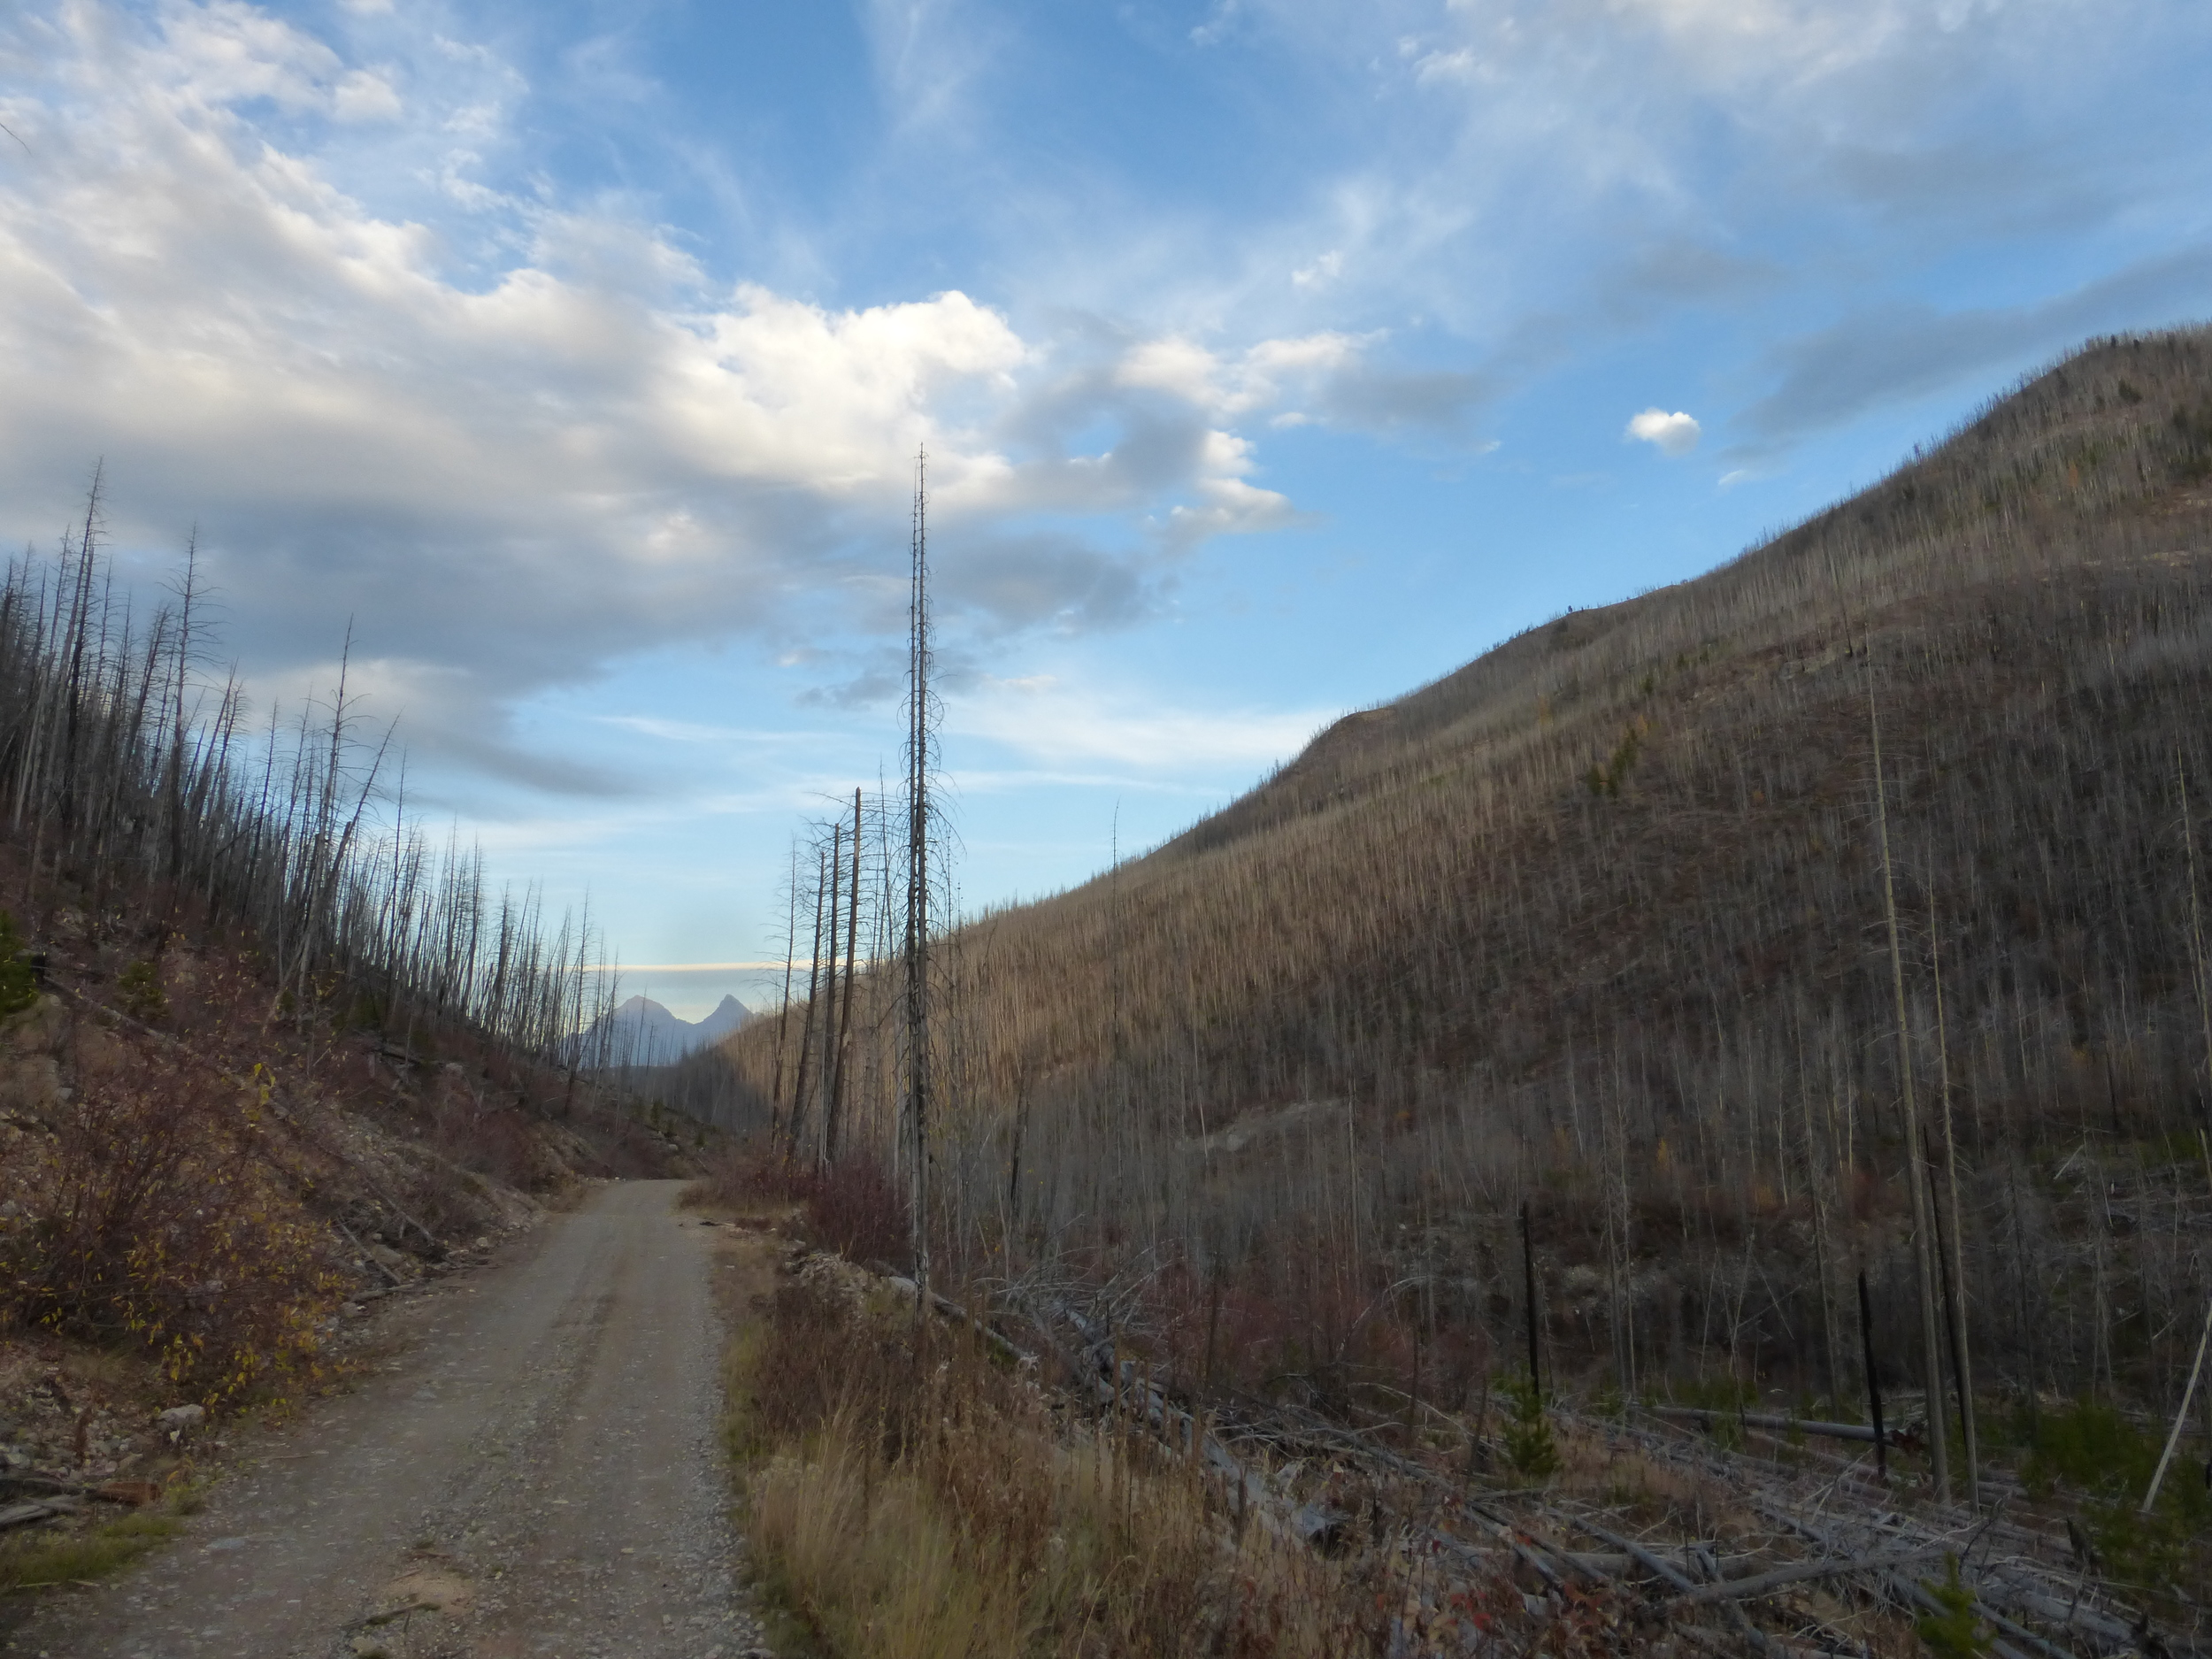 A fire swept through the area, or pine beetle, or both? Glacier National Park's mountains in the distance.